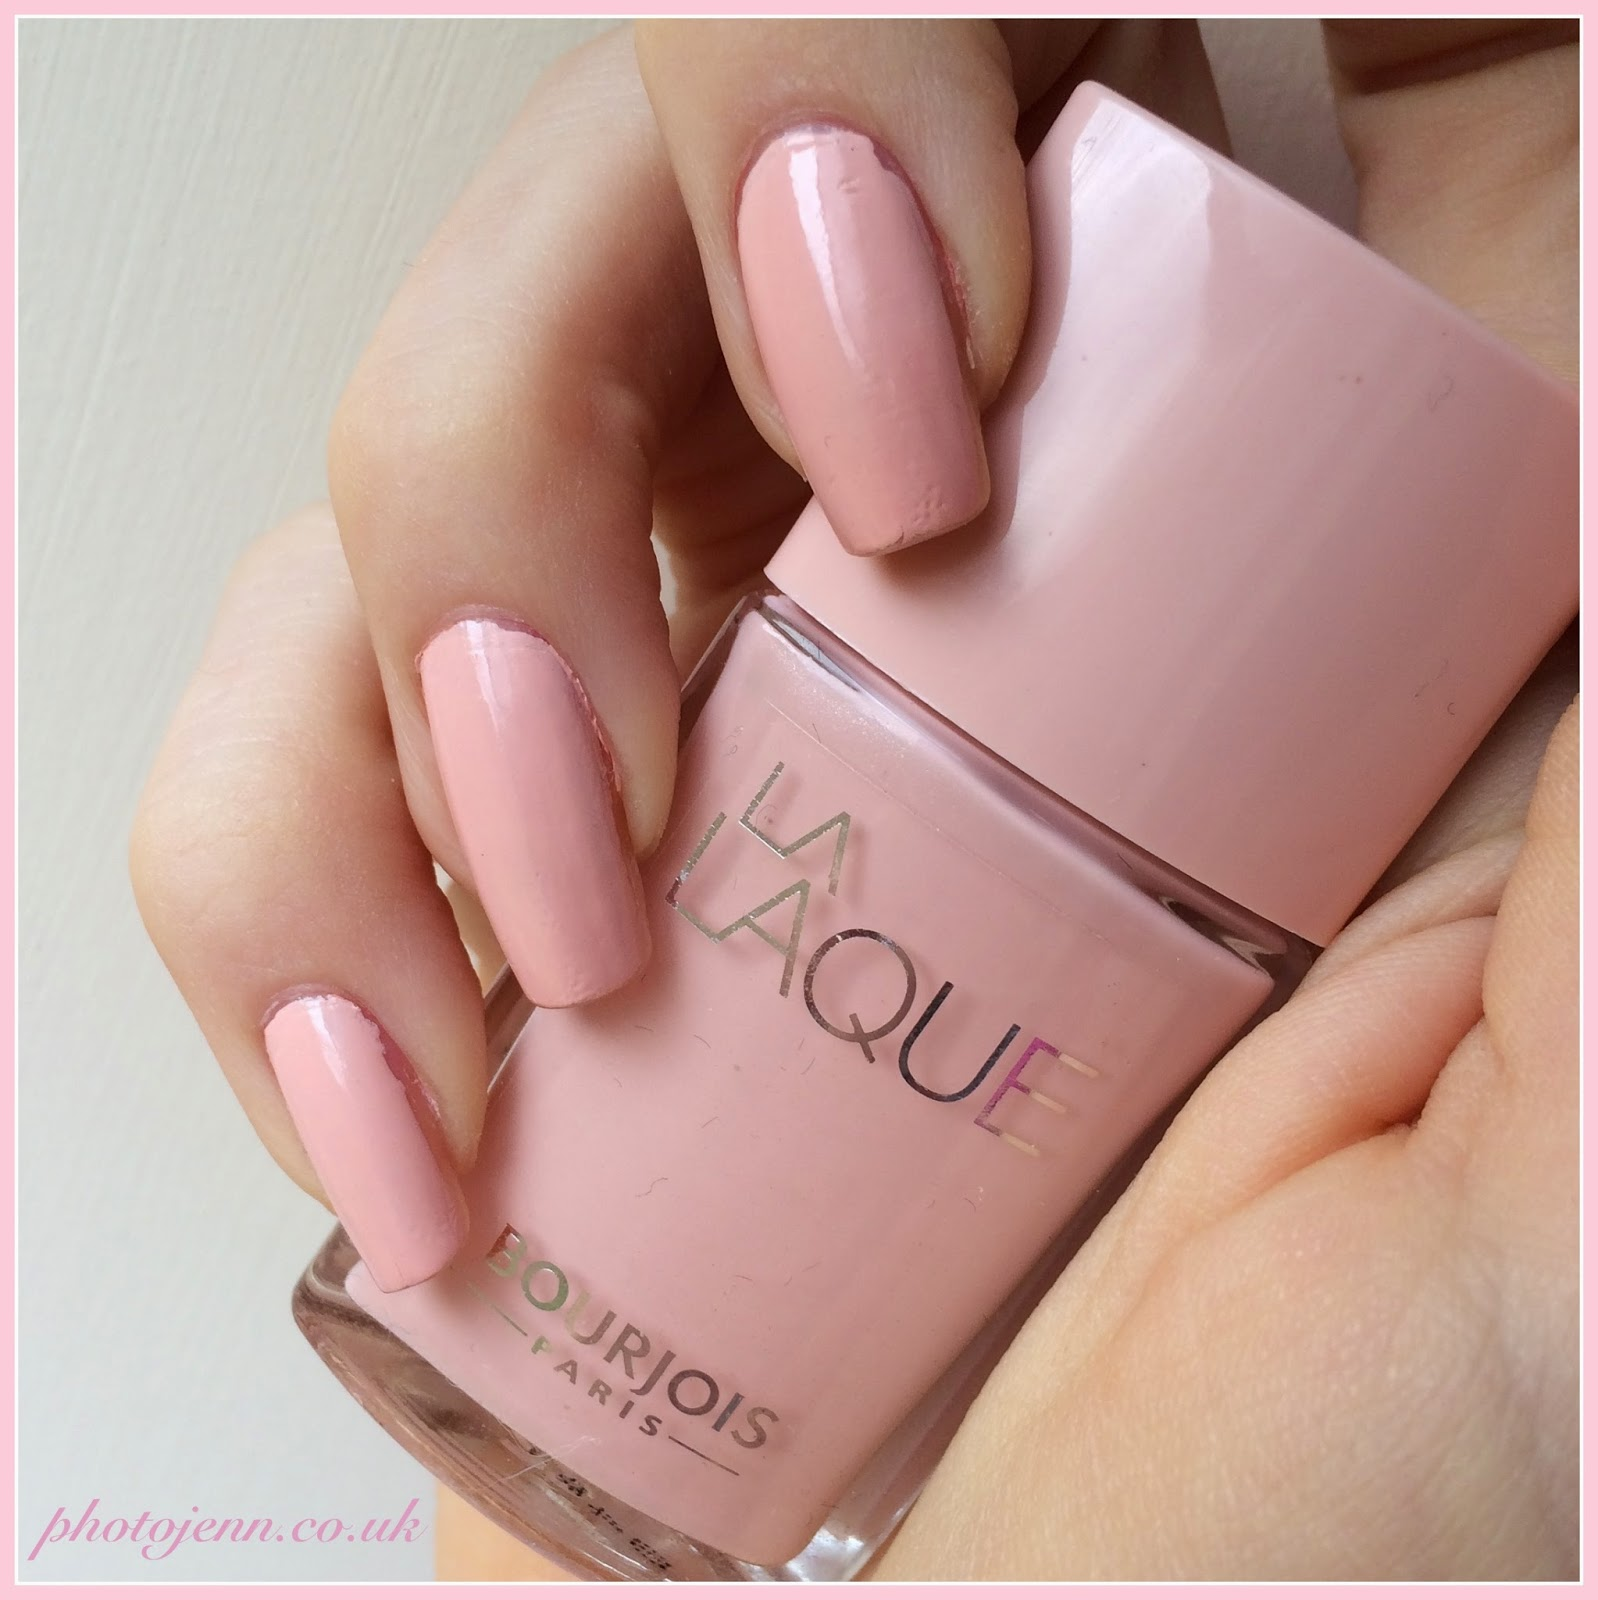 Photo Jenn Ic New Bourjois La Laque Nail Enamel Review And Swatches